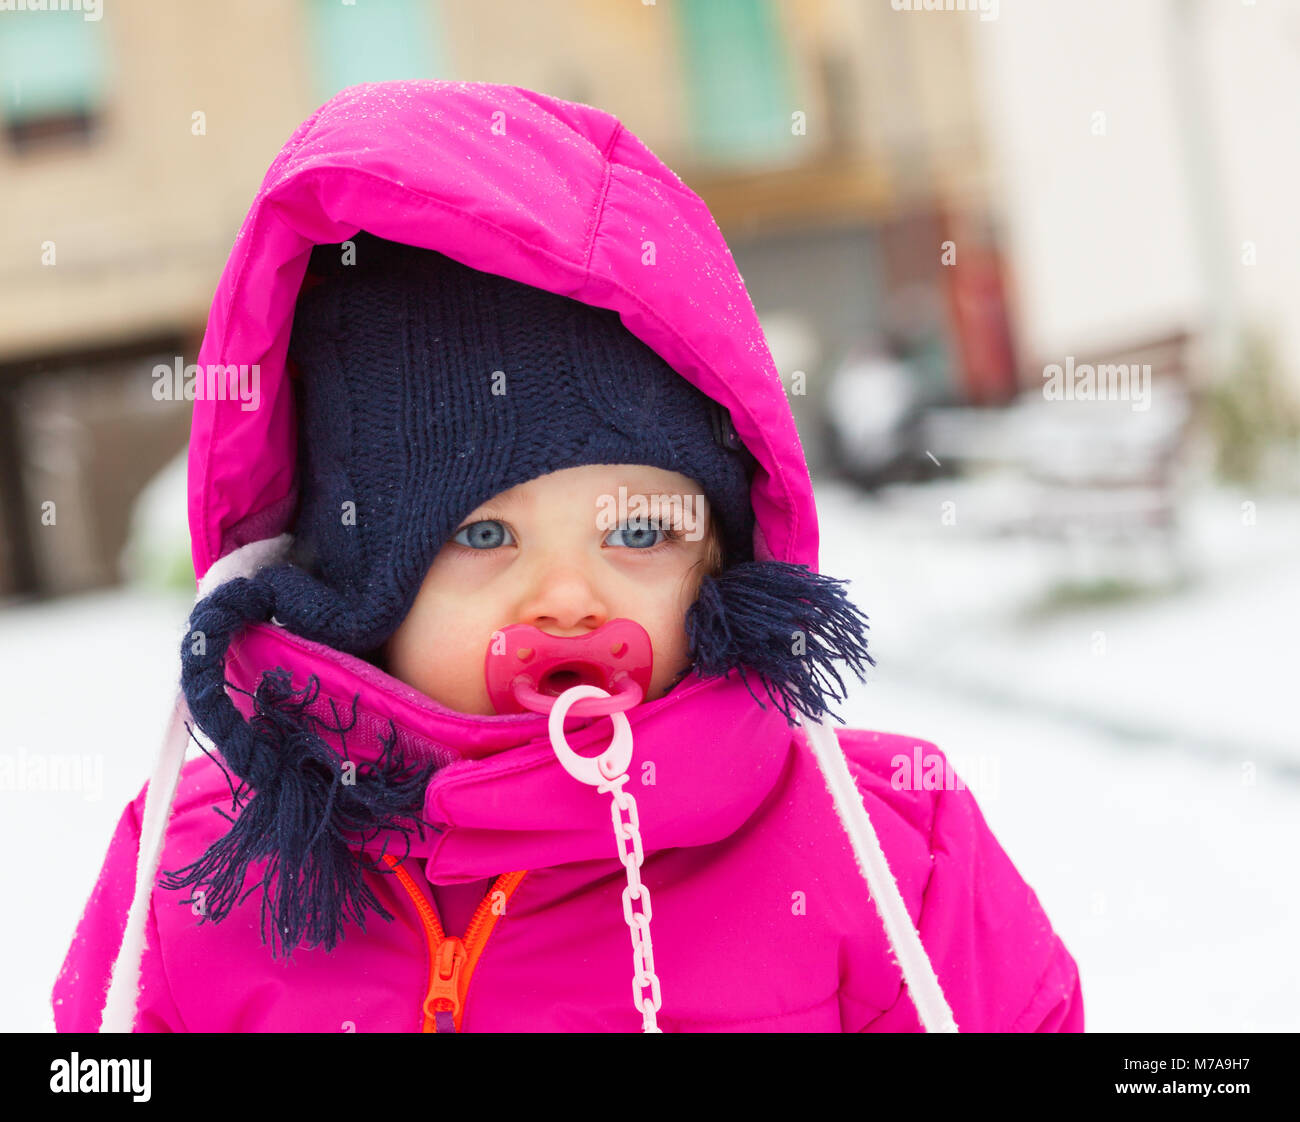 Adorable toddler baby girl in a magenta snow suit playing on the snow. - Stock Image